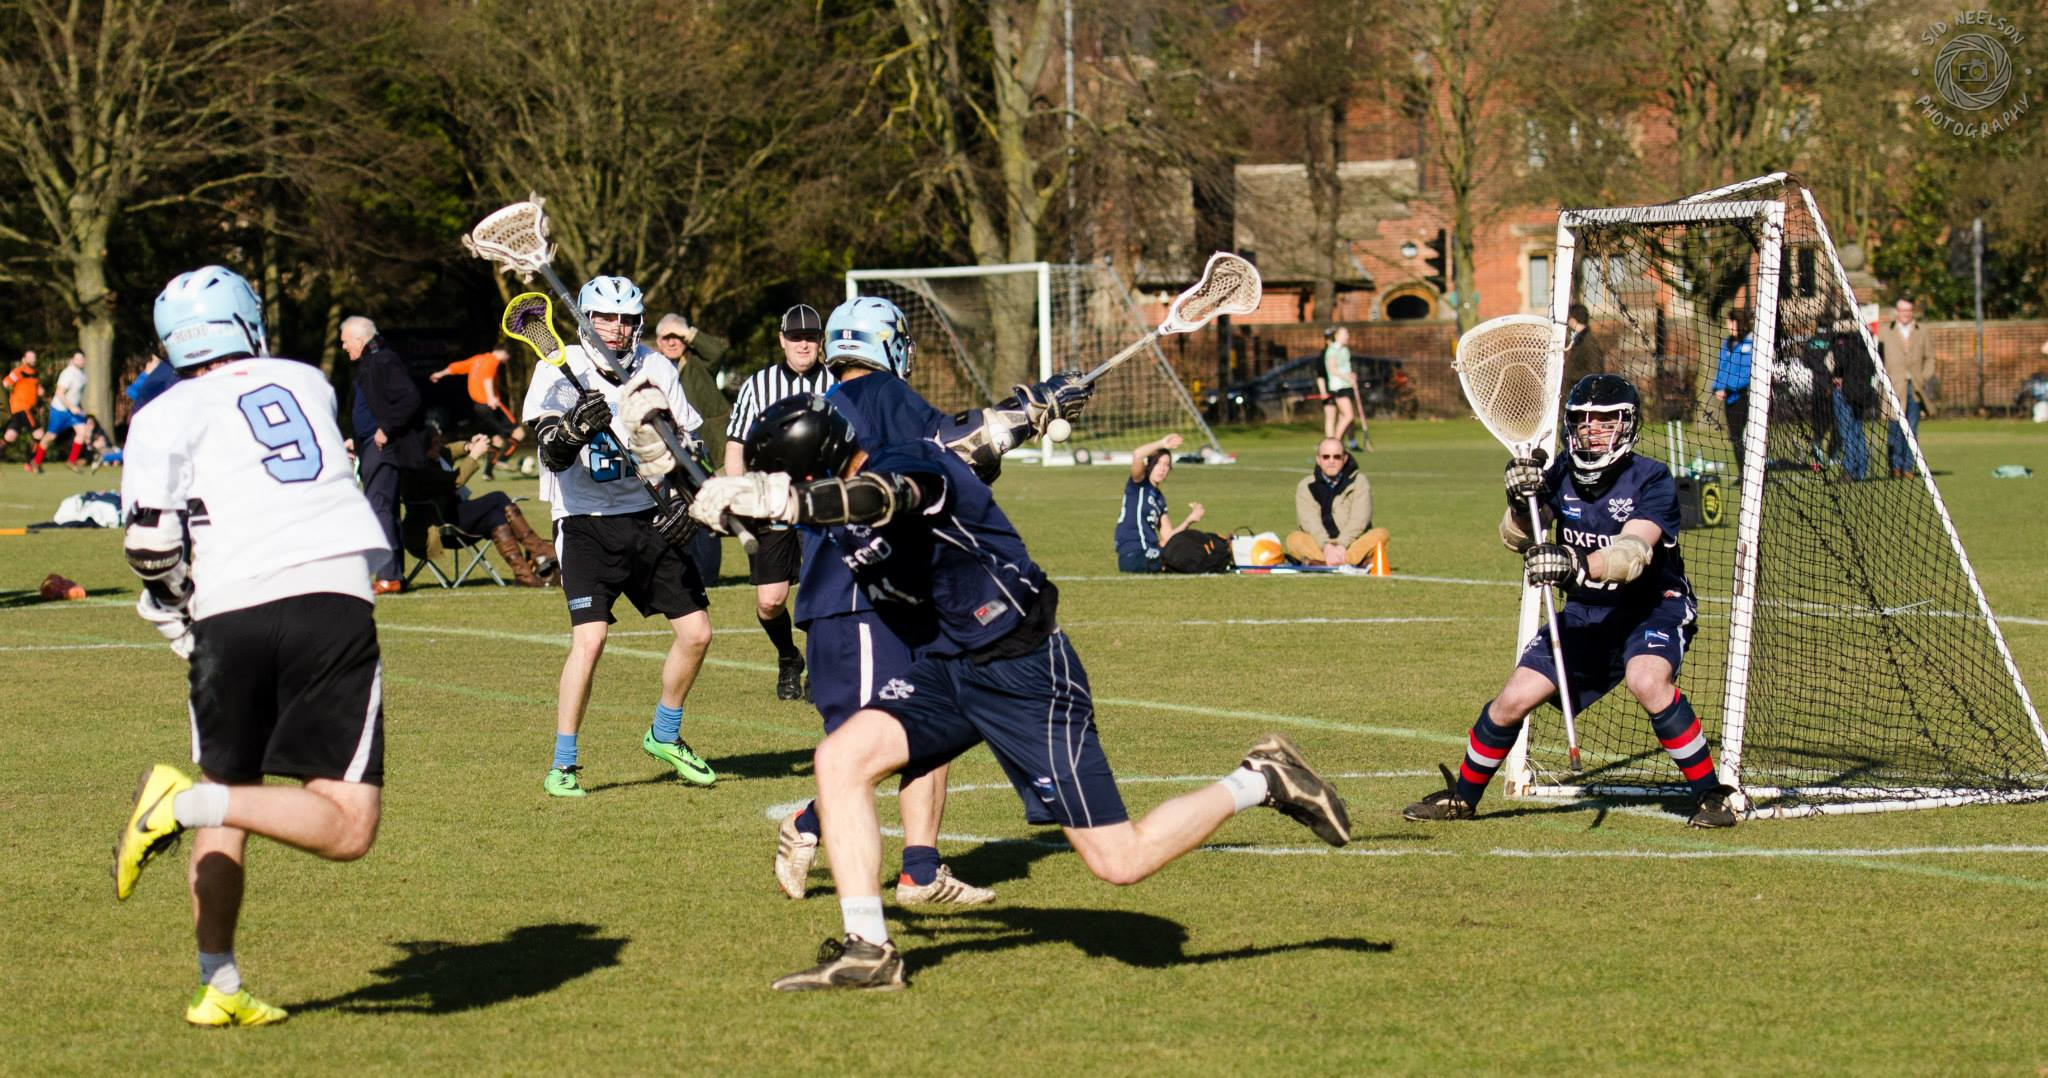 Nick Evans unleashes a shot at the Oxford goal in the Varsity Match 2015